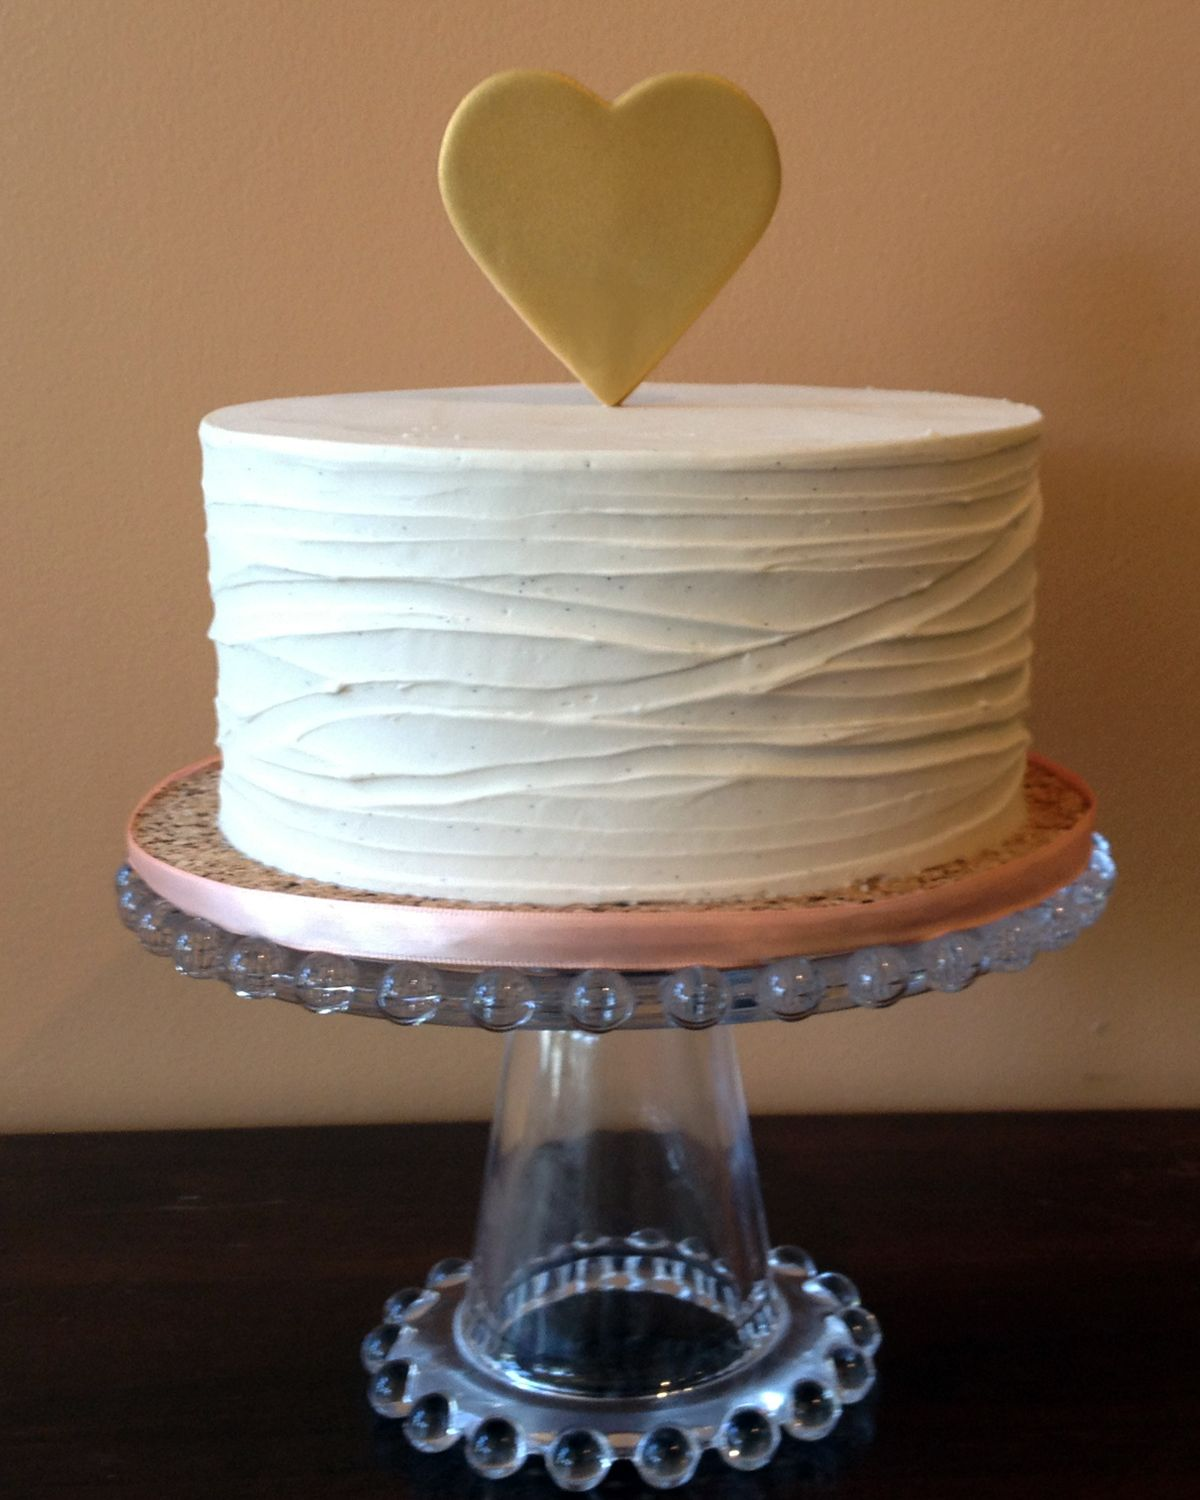 Treat yourself to our new simple treat signature buttercream cake